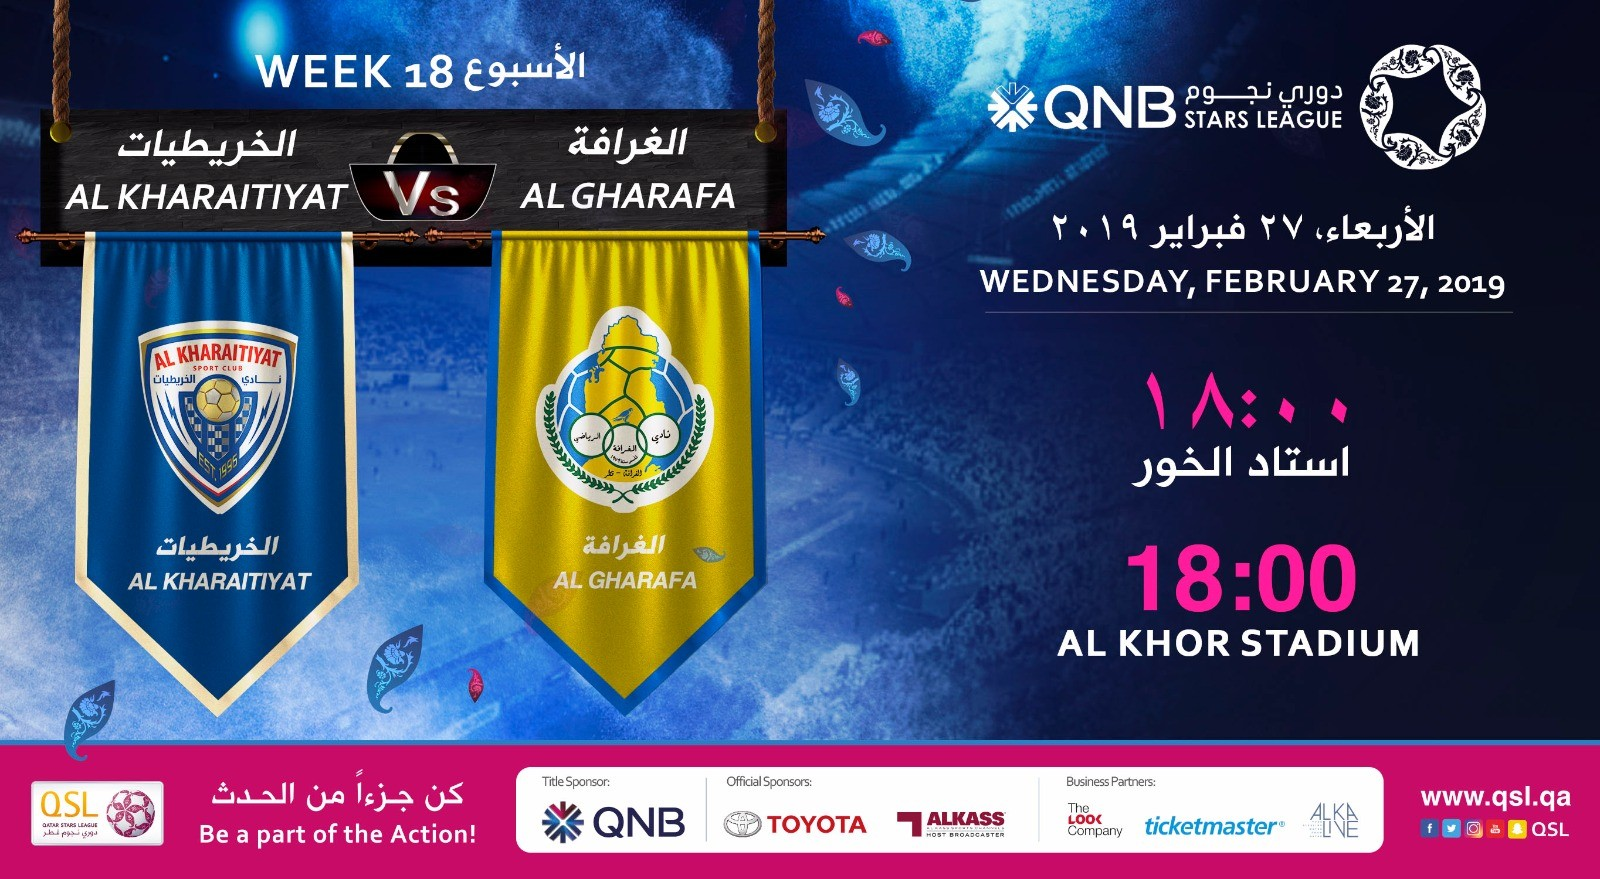 QNB Stars League Week 18 — Al Kharaitiyat vs Al Gharafa